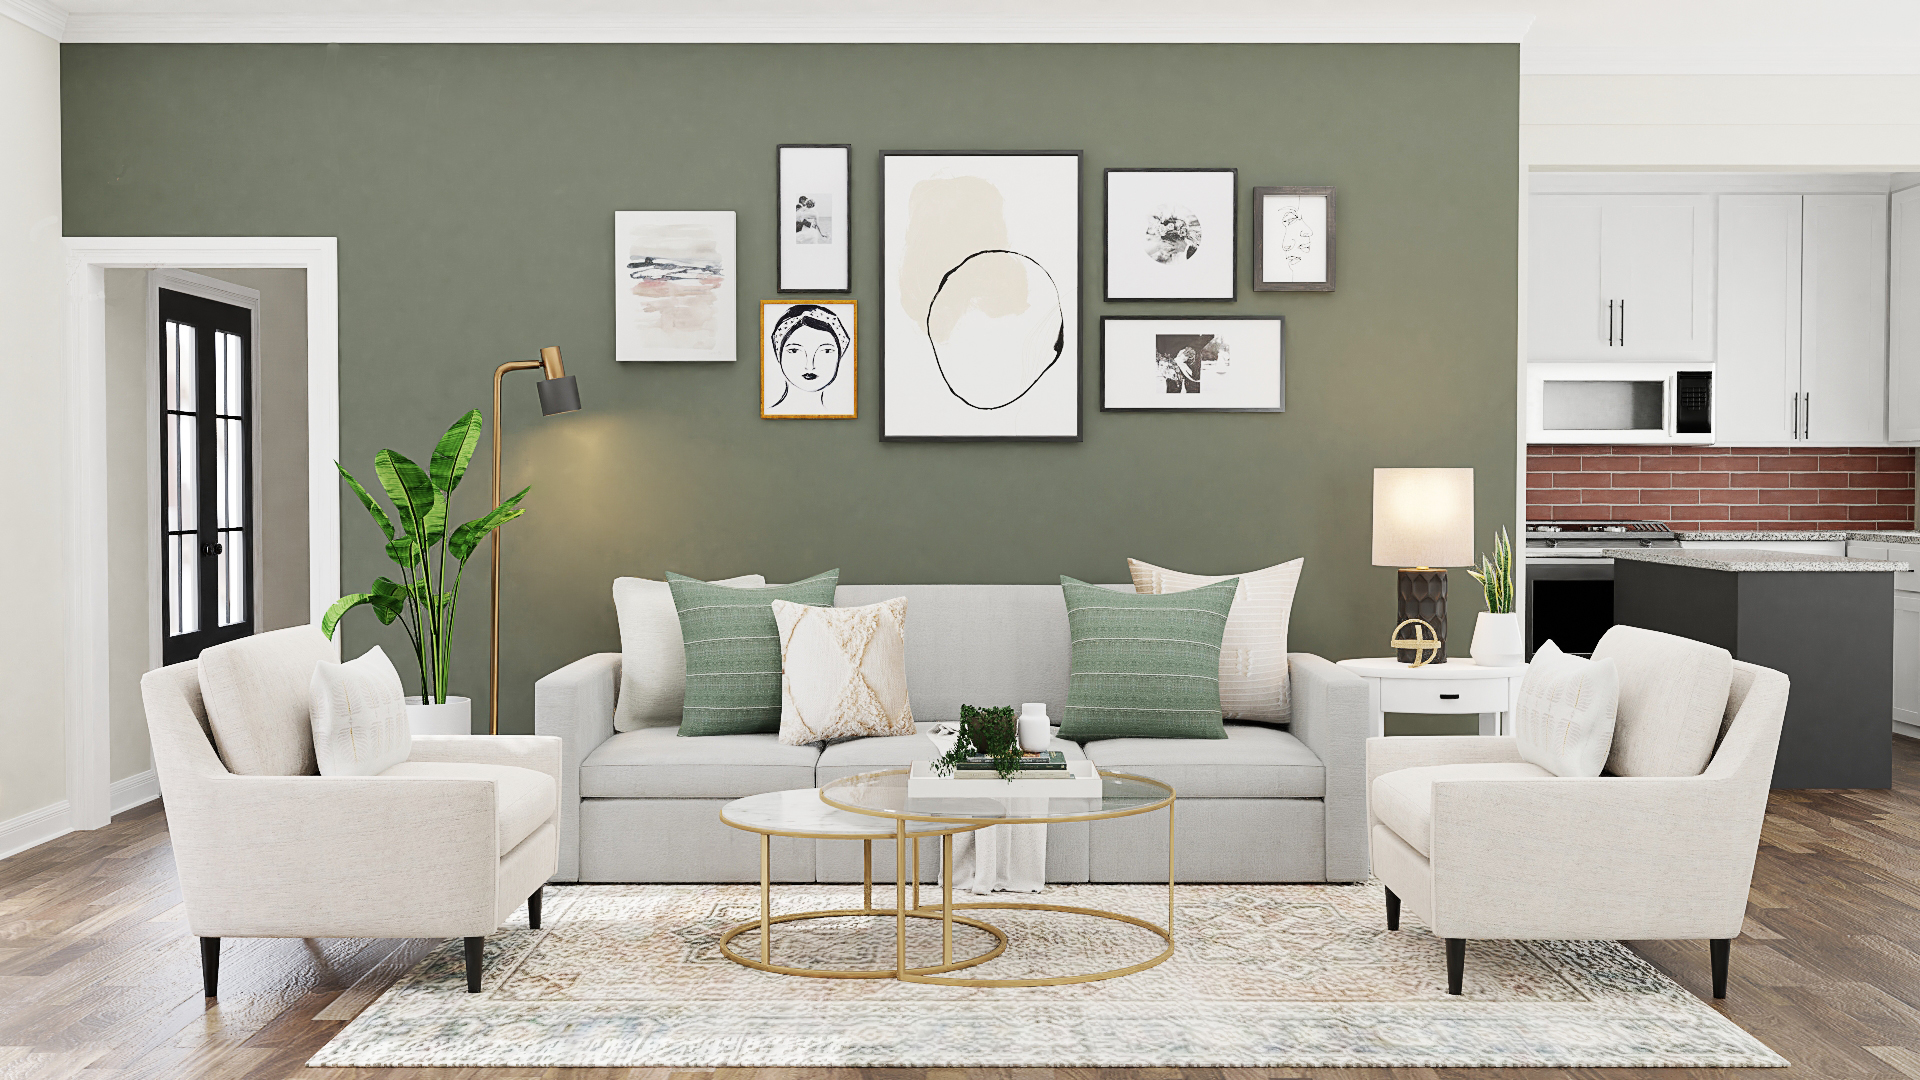 Best & Popular Living Room Paint Colors of 2021 You Should Know   Spacejoy